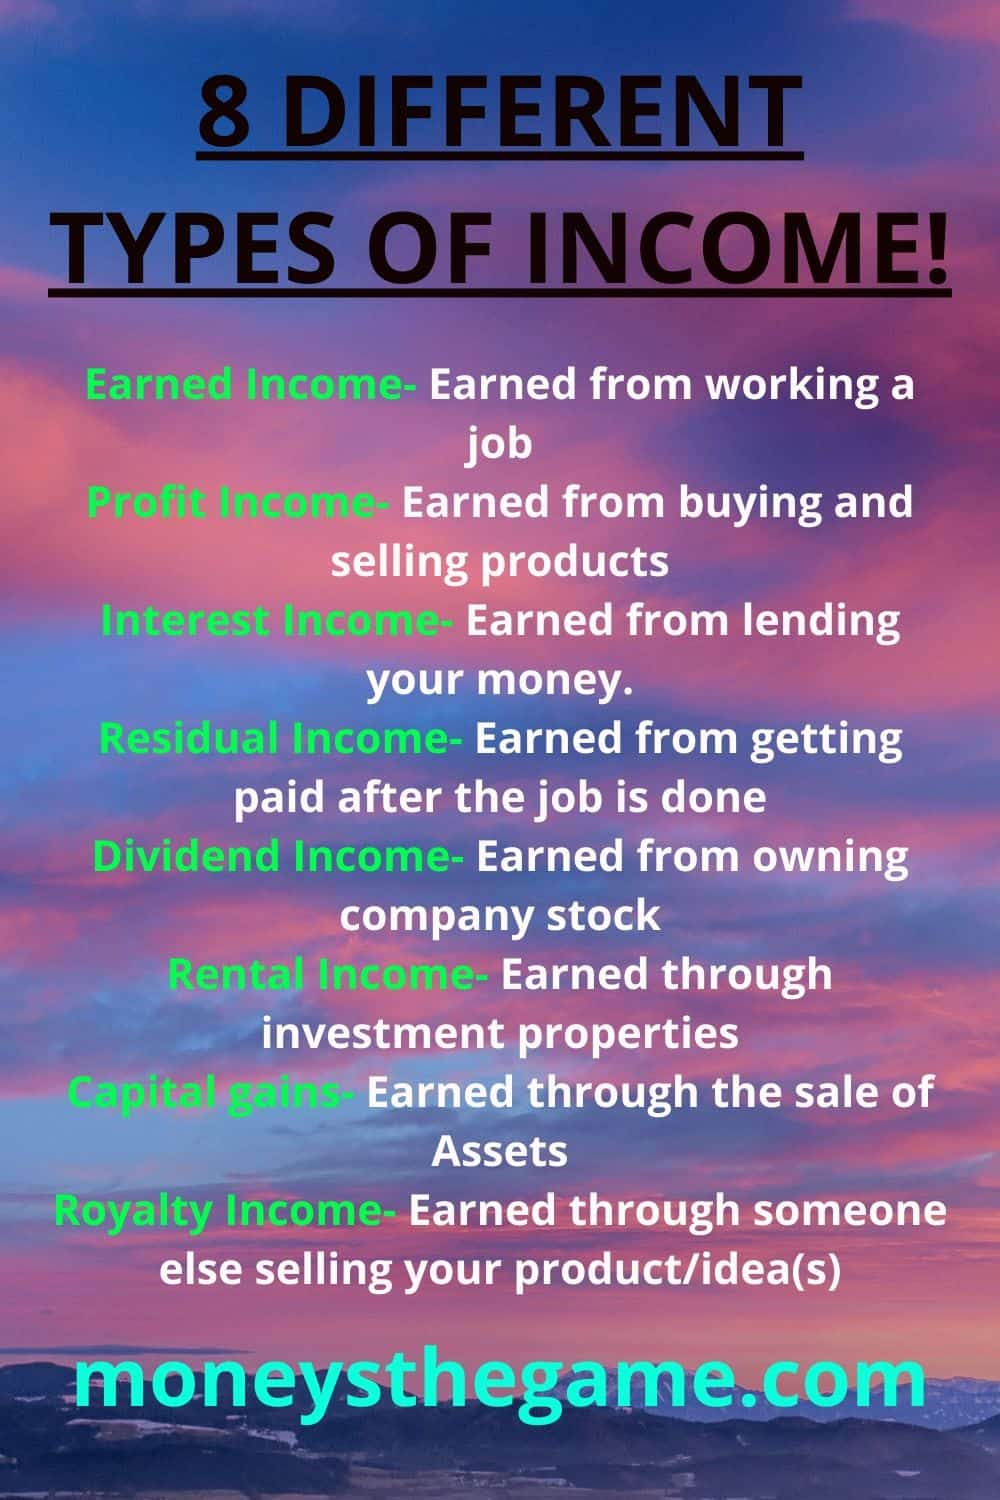 8 Different Types Of Income And How You Can Create Each